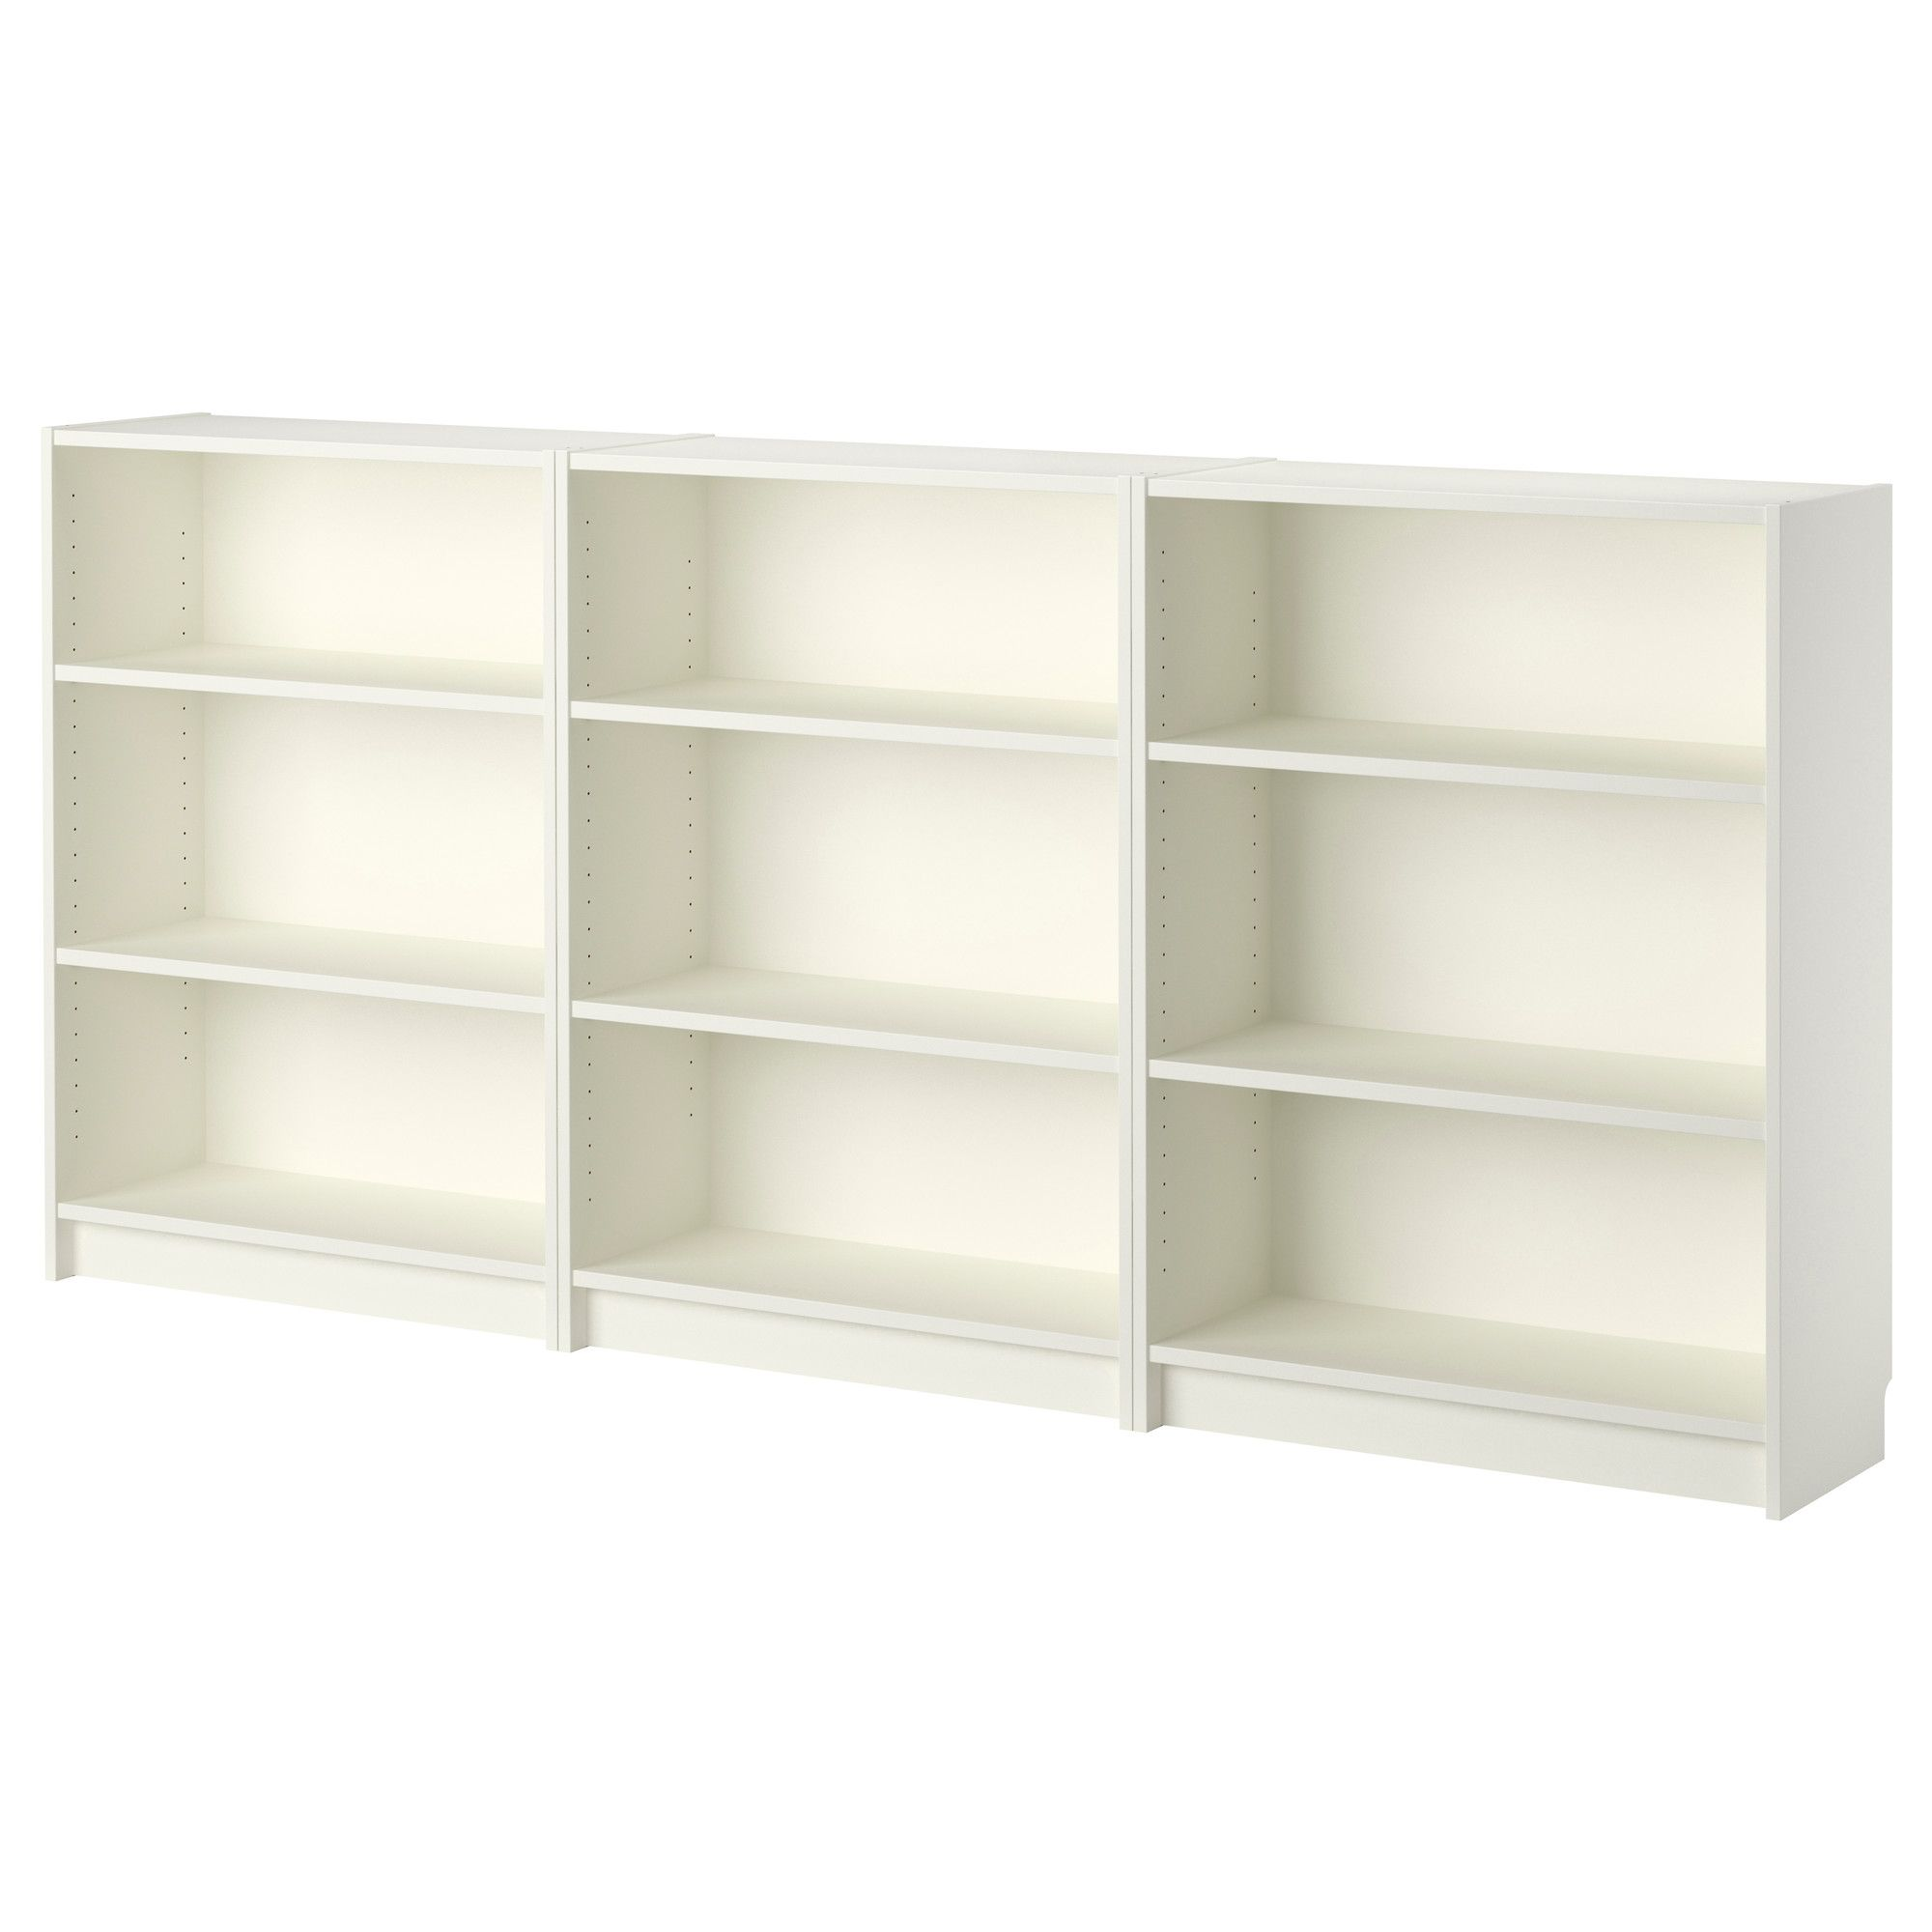 Ikea regal billy  BILLY Bookcase, white | Bookcase white, Ikea billy and Shelves